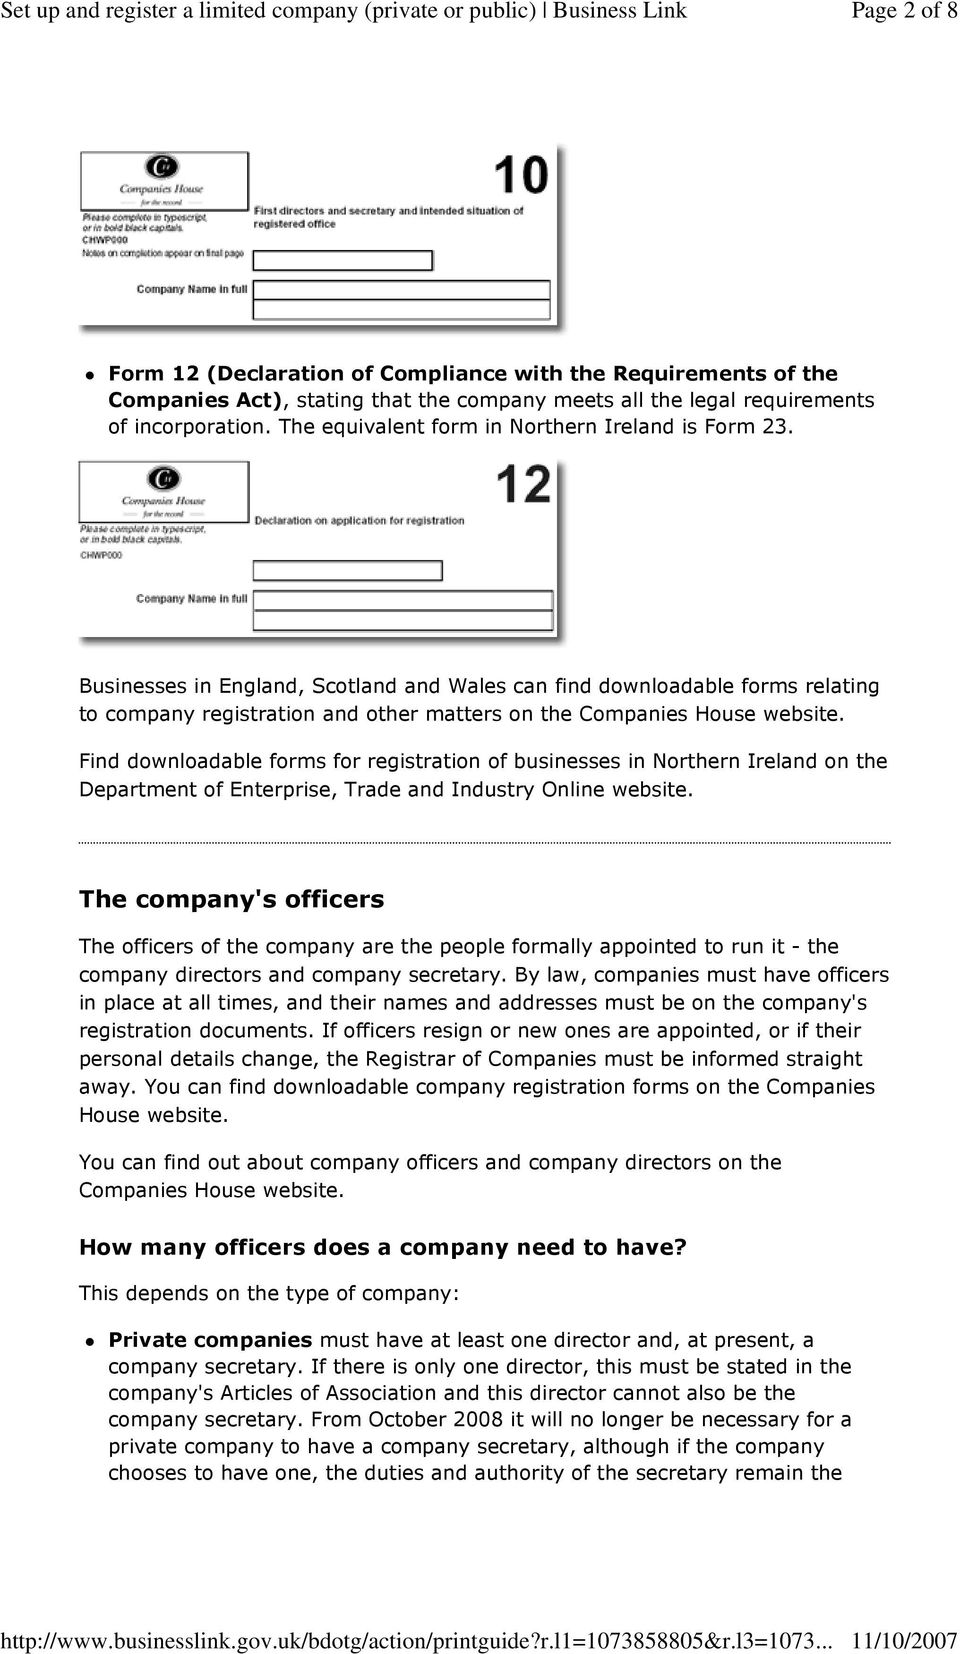 Businesses in England, Scotland and Wales can find downloadable forms relating to company registration and other matters on the Companies House website.